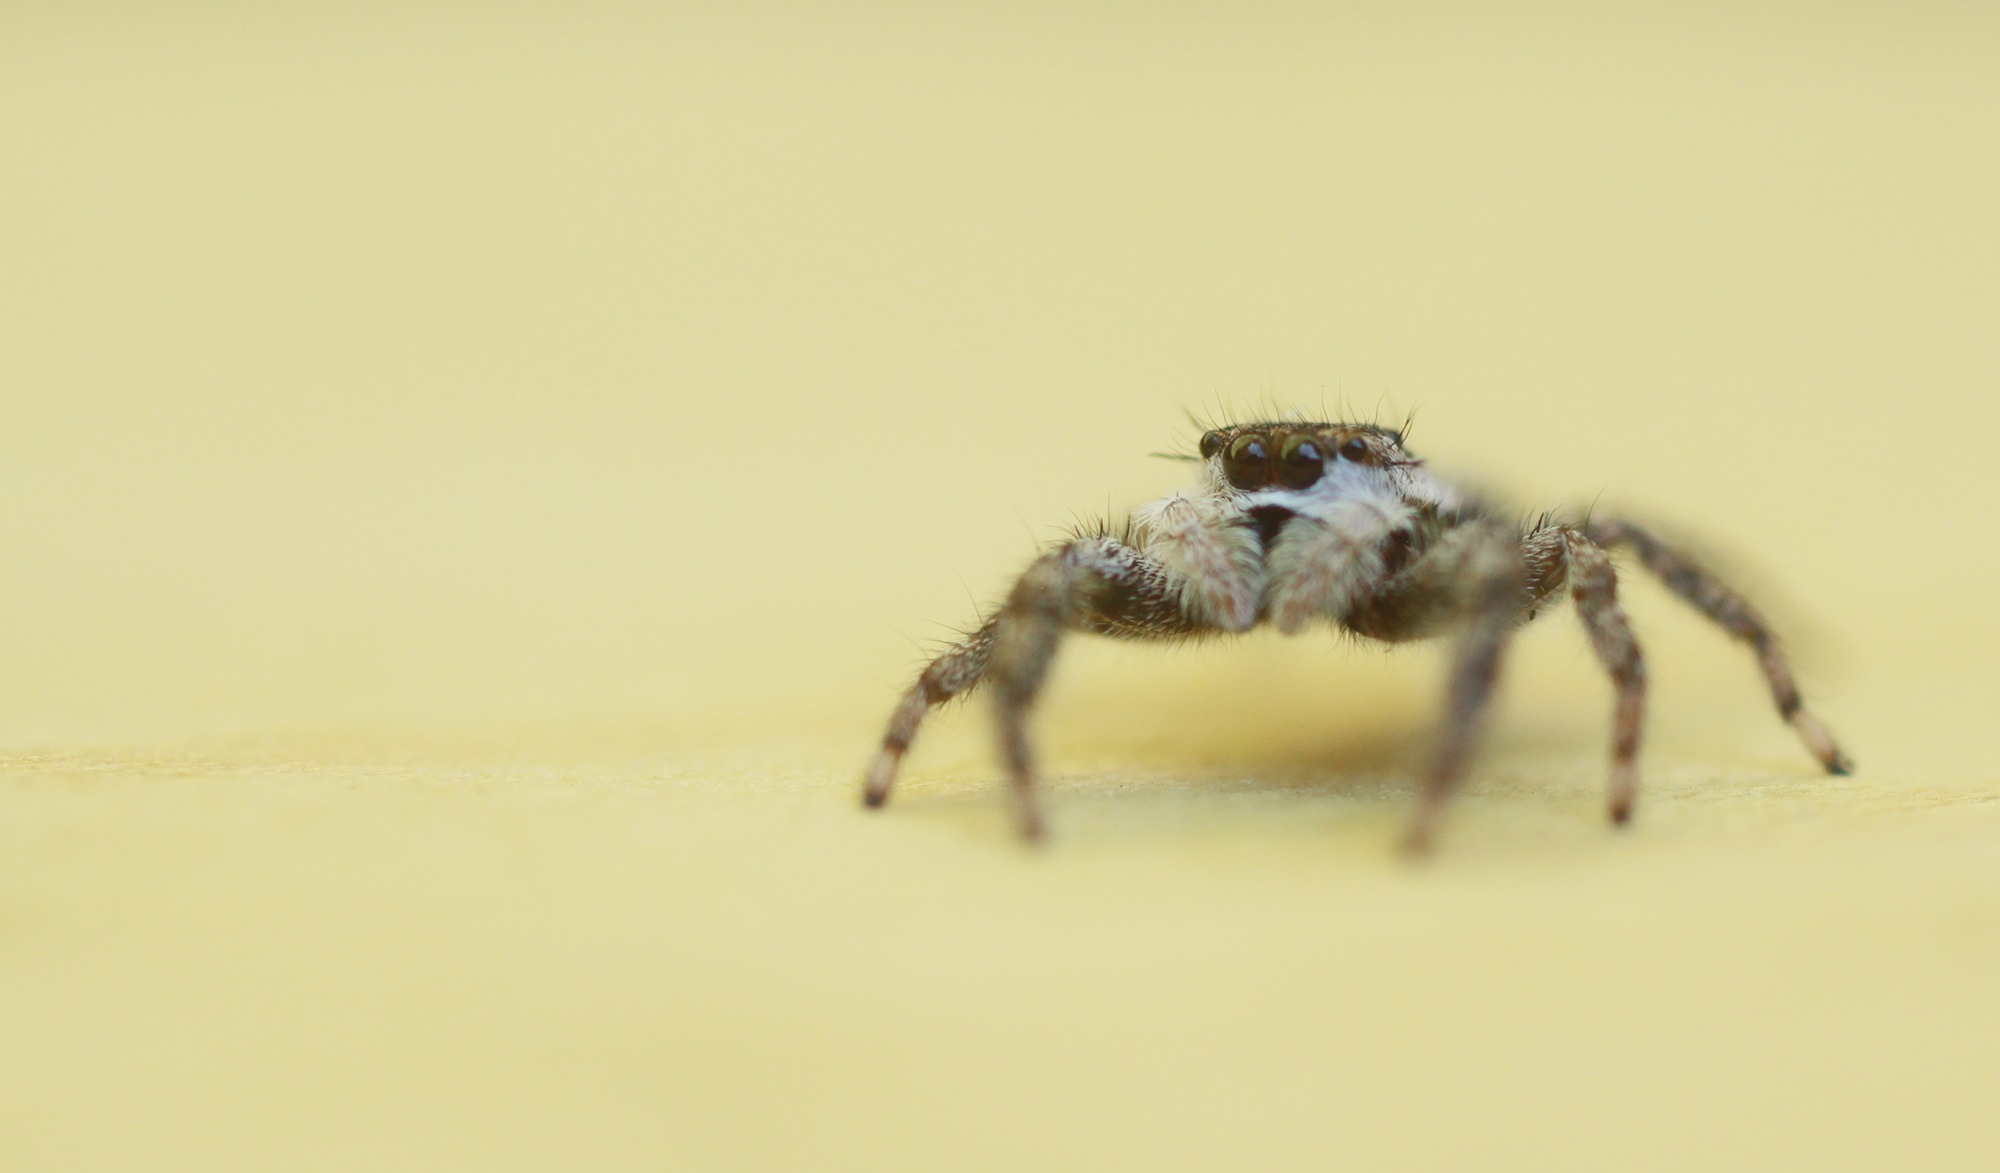 jumper on the prowl by cboehlkejr